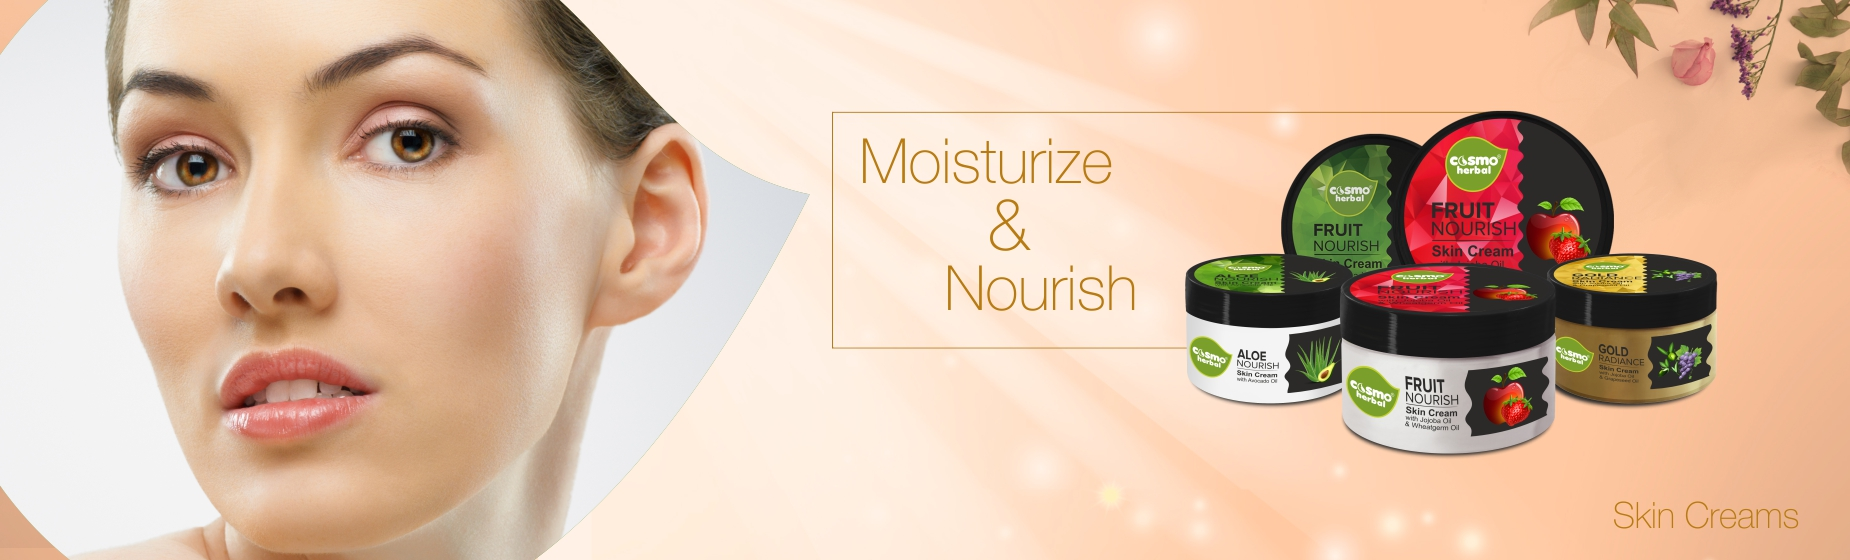 Cosmo Herbals Limited Nourish Skin Cream